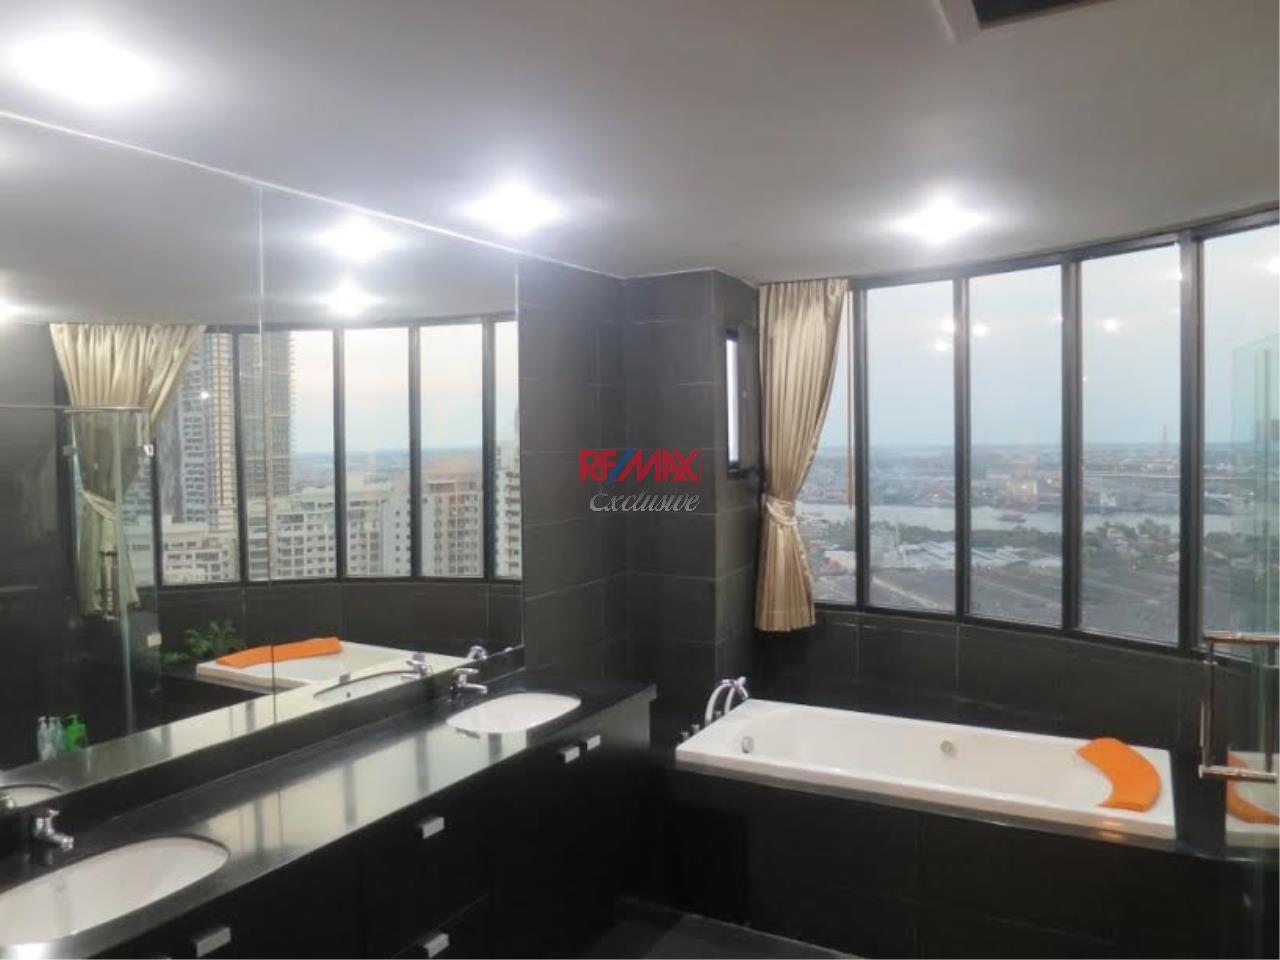 RE/MAX Exclusive Agency's Royal River Place Condo, 3 Bedrooms, 3 Bathrooms, Only For Sale 20,000,000 THB 7